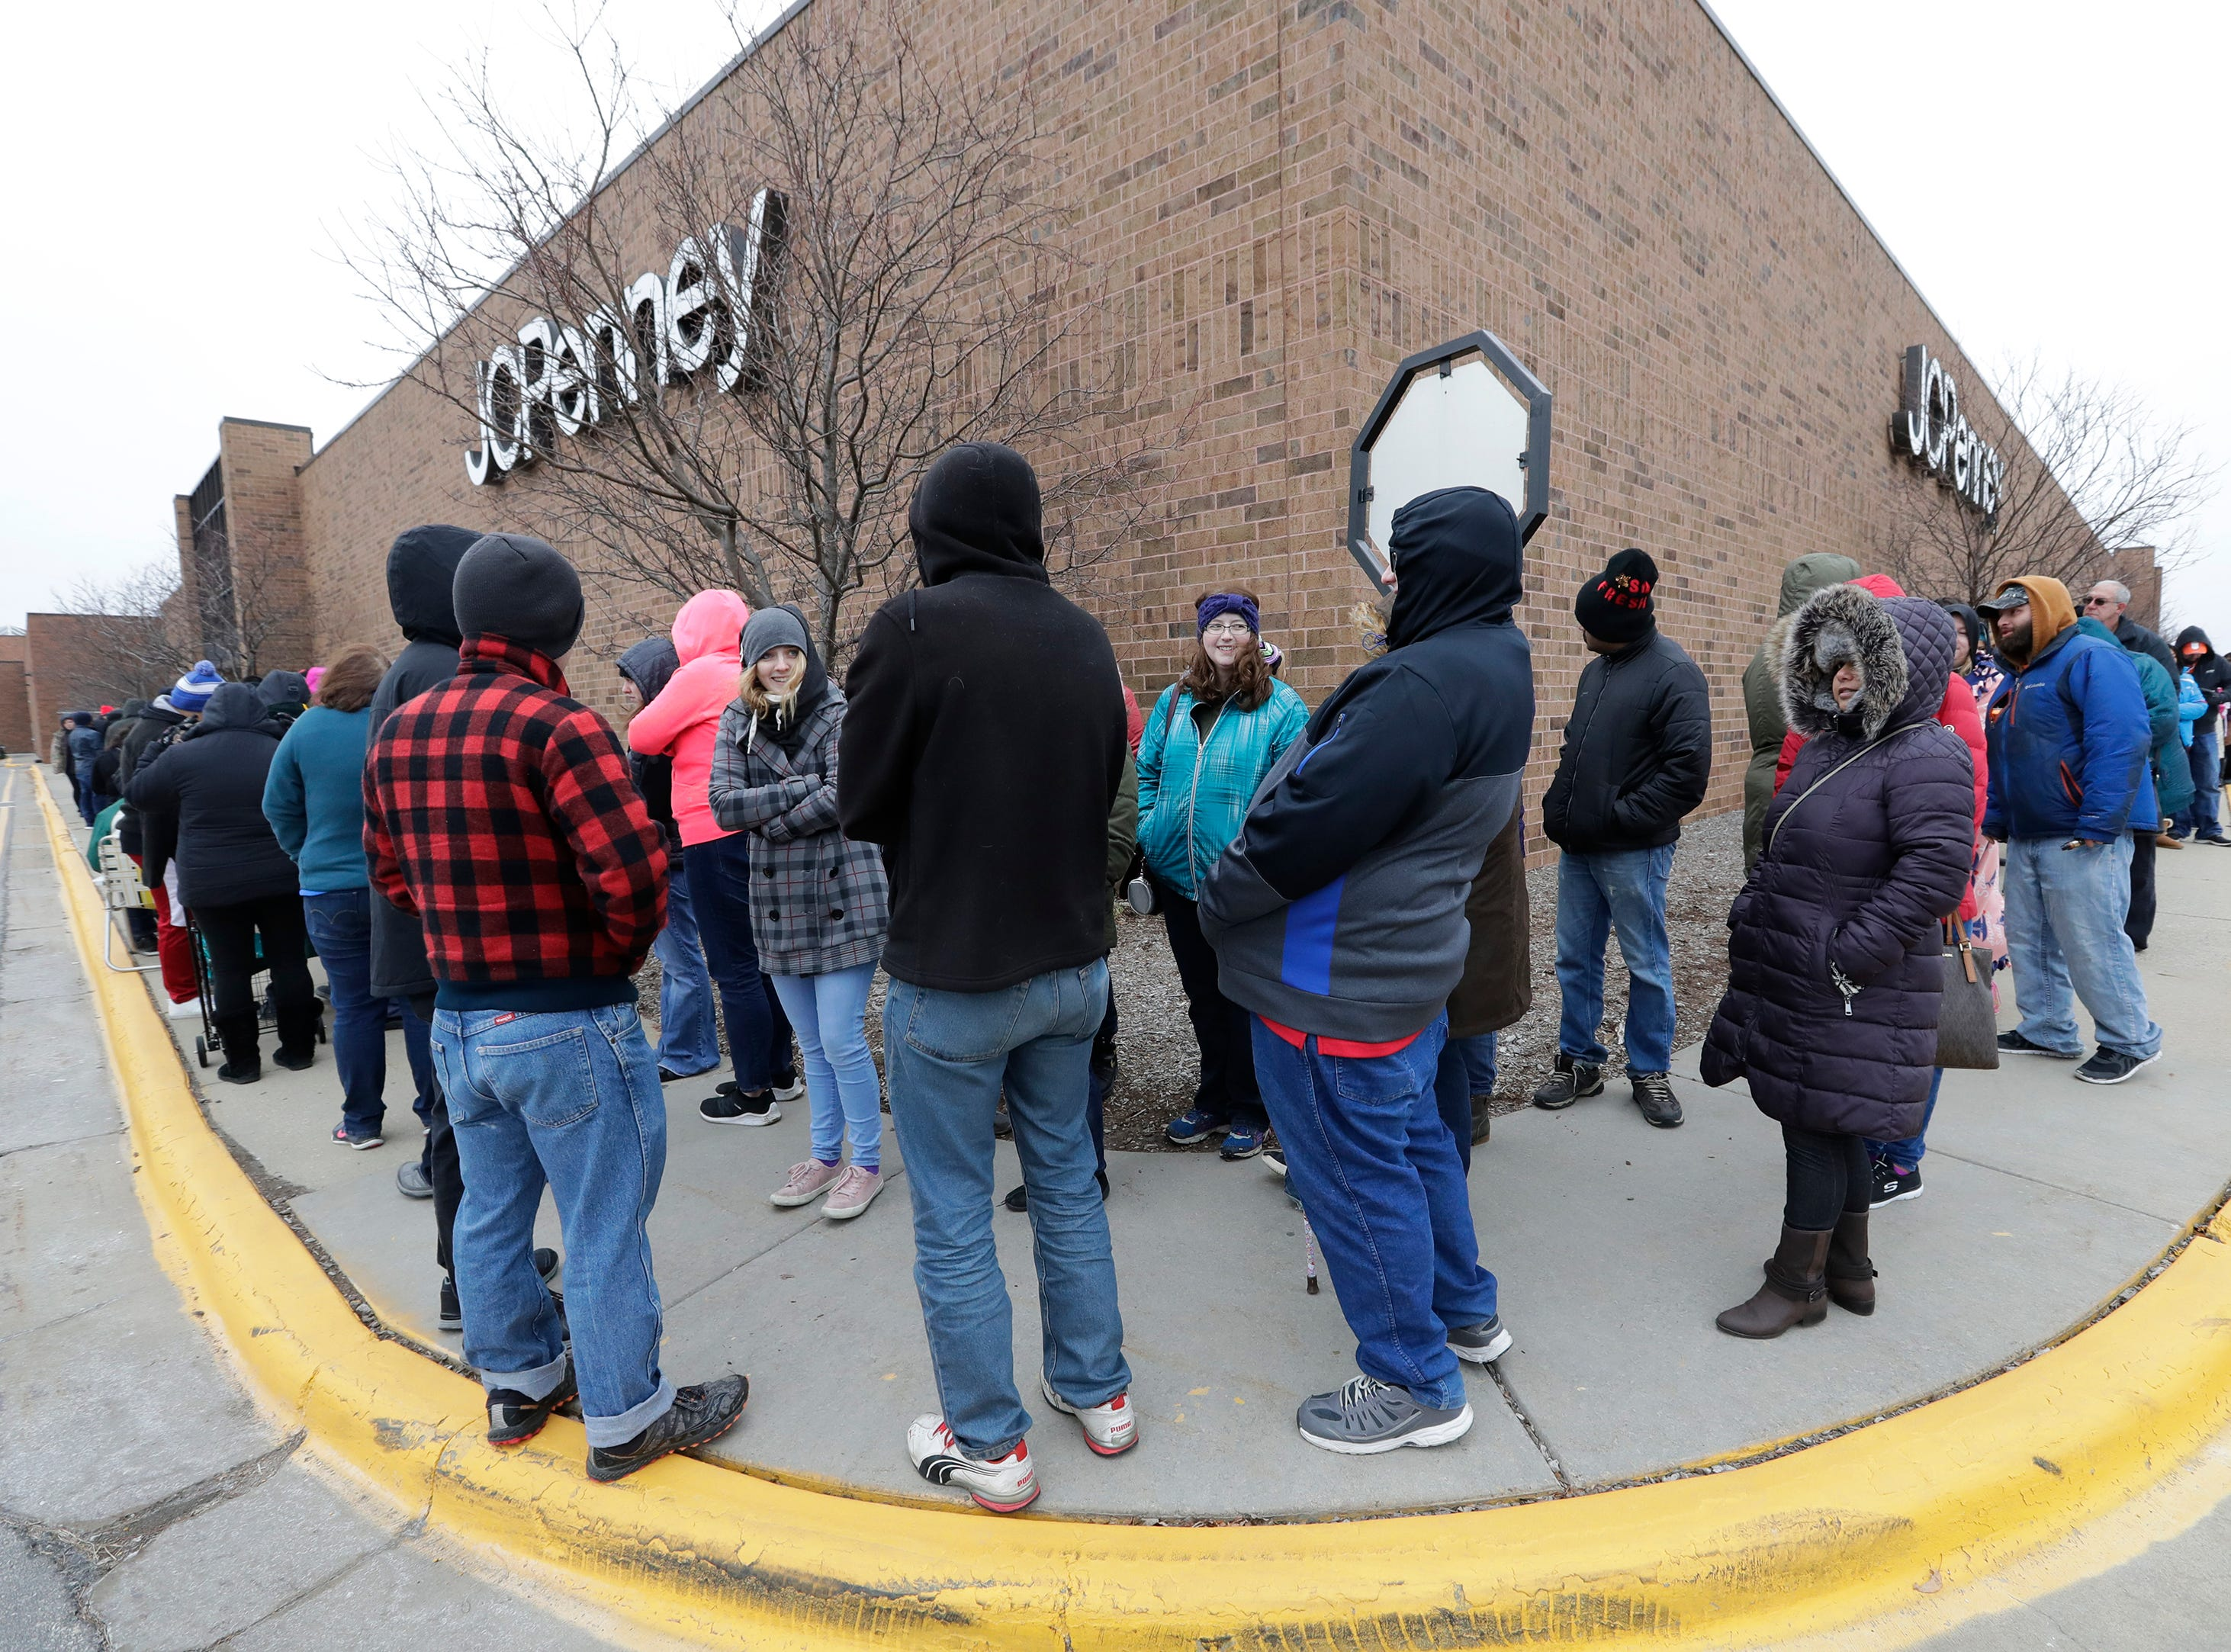 A long line of customers waits for Black Friday deals in front of JCPenney Thursday, November 22, 2018, in Grand Chute, Wis. 